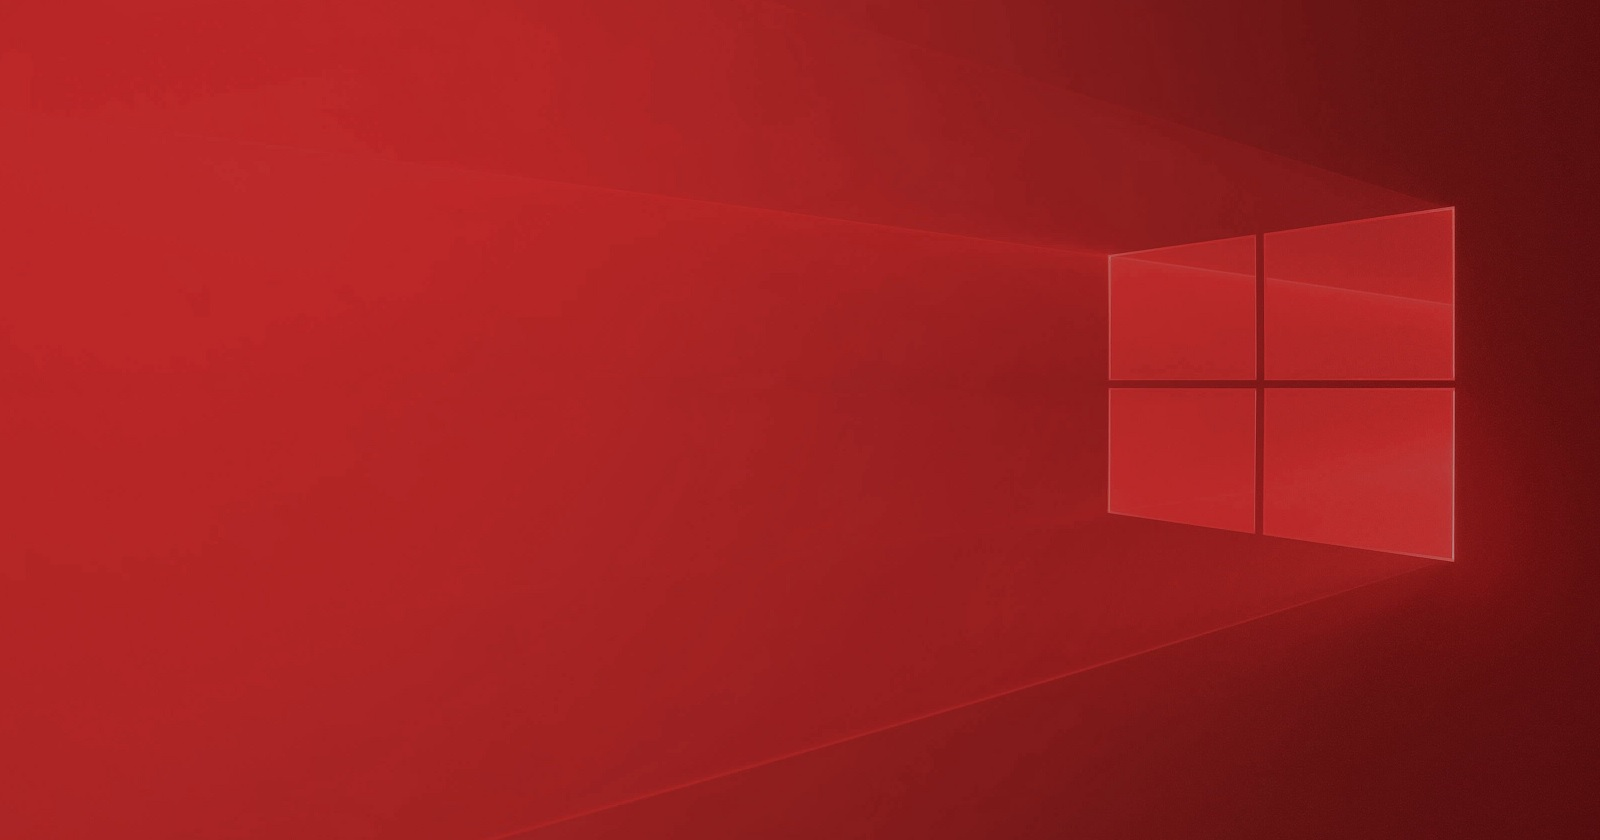 Adobe Flash Player is about to stop working on Windows 10